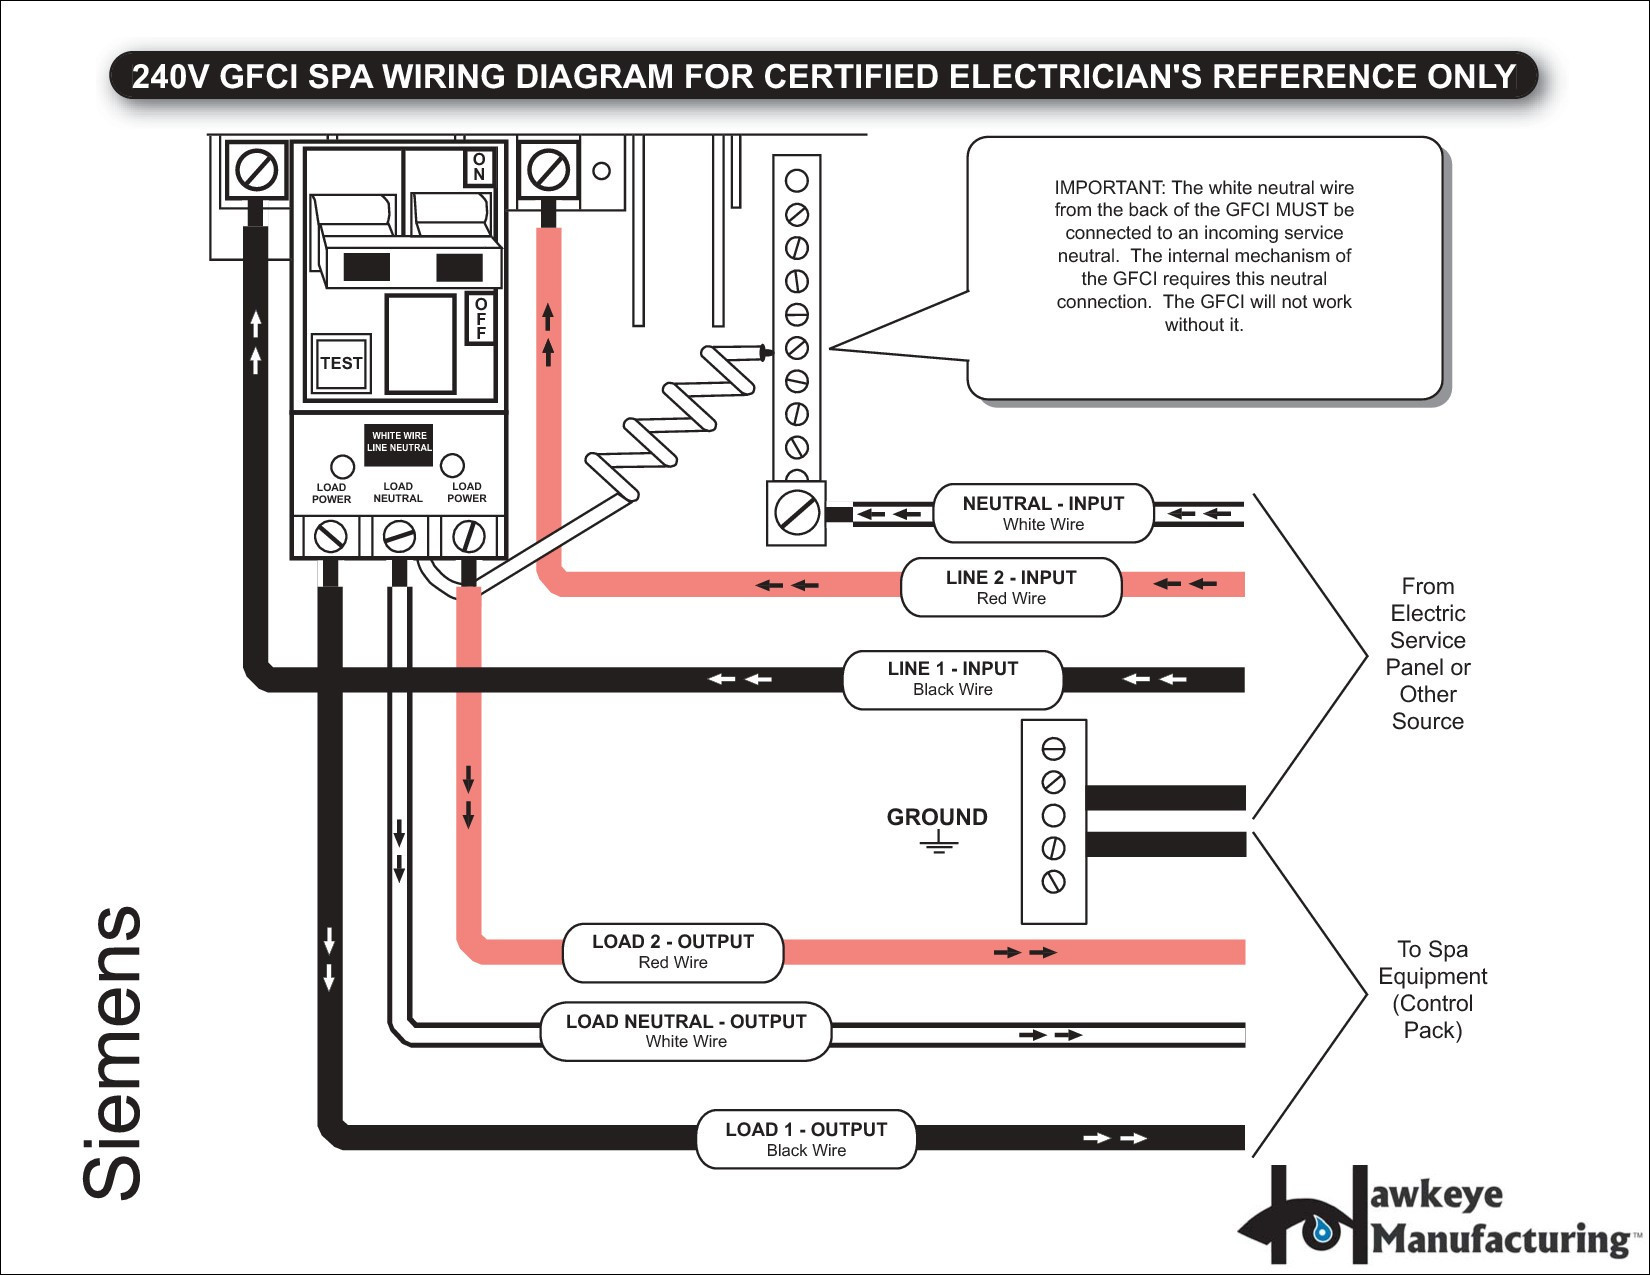 Square D Hot Tub Gfci Breaker Wiring Diagram